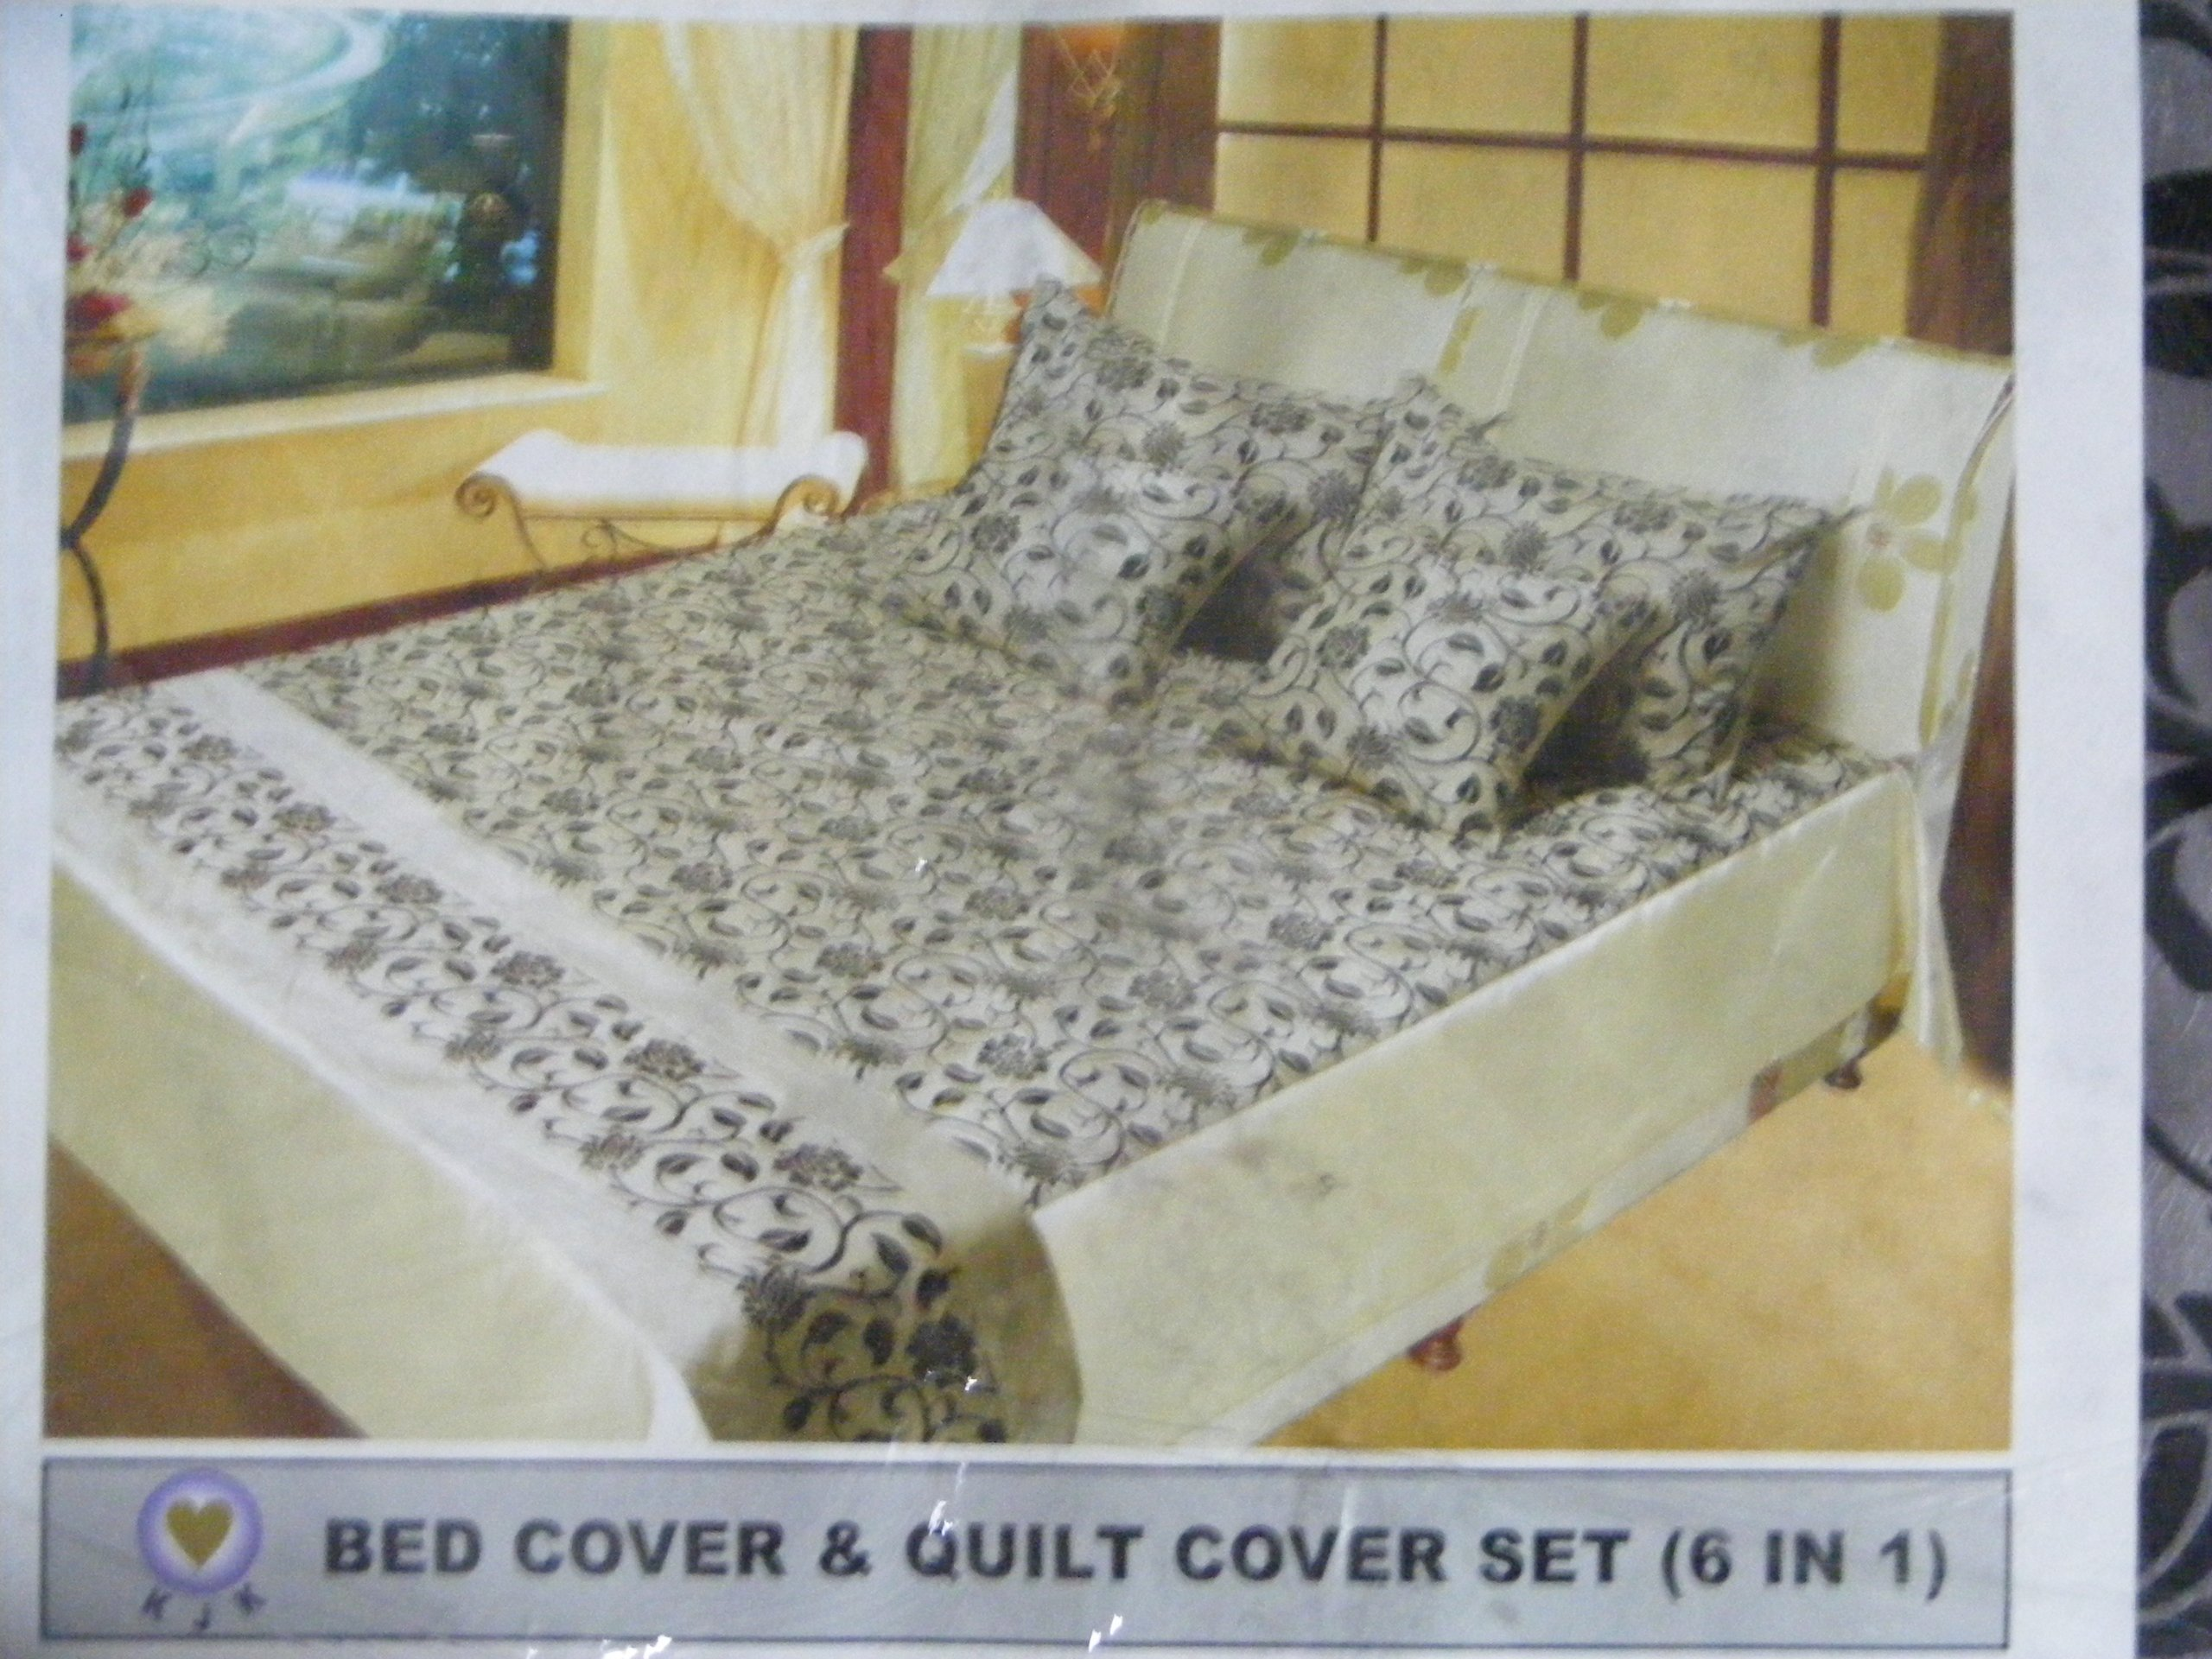 6 piece Thai Silk/Satin Bed Cover Set (KING SIZE) Design #104- Ivy Floral Pattern by KING